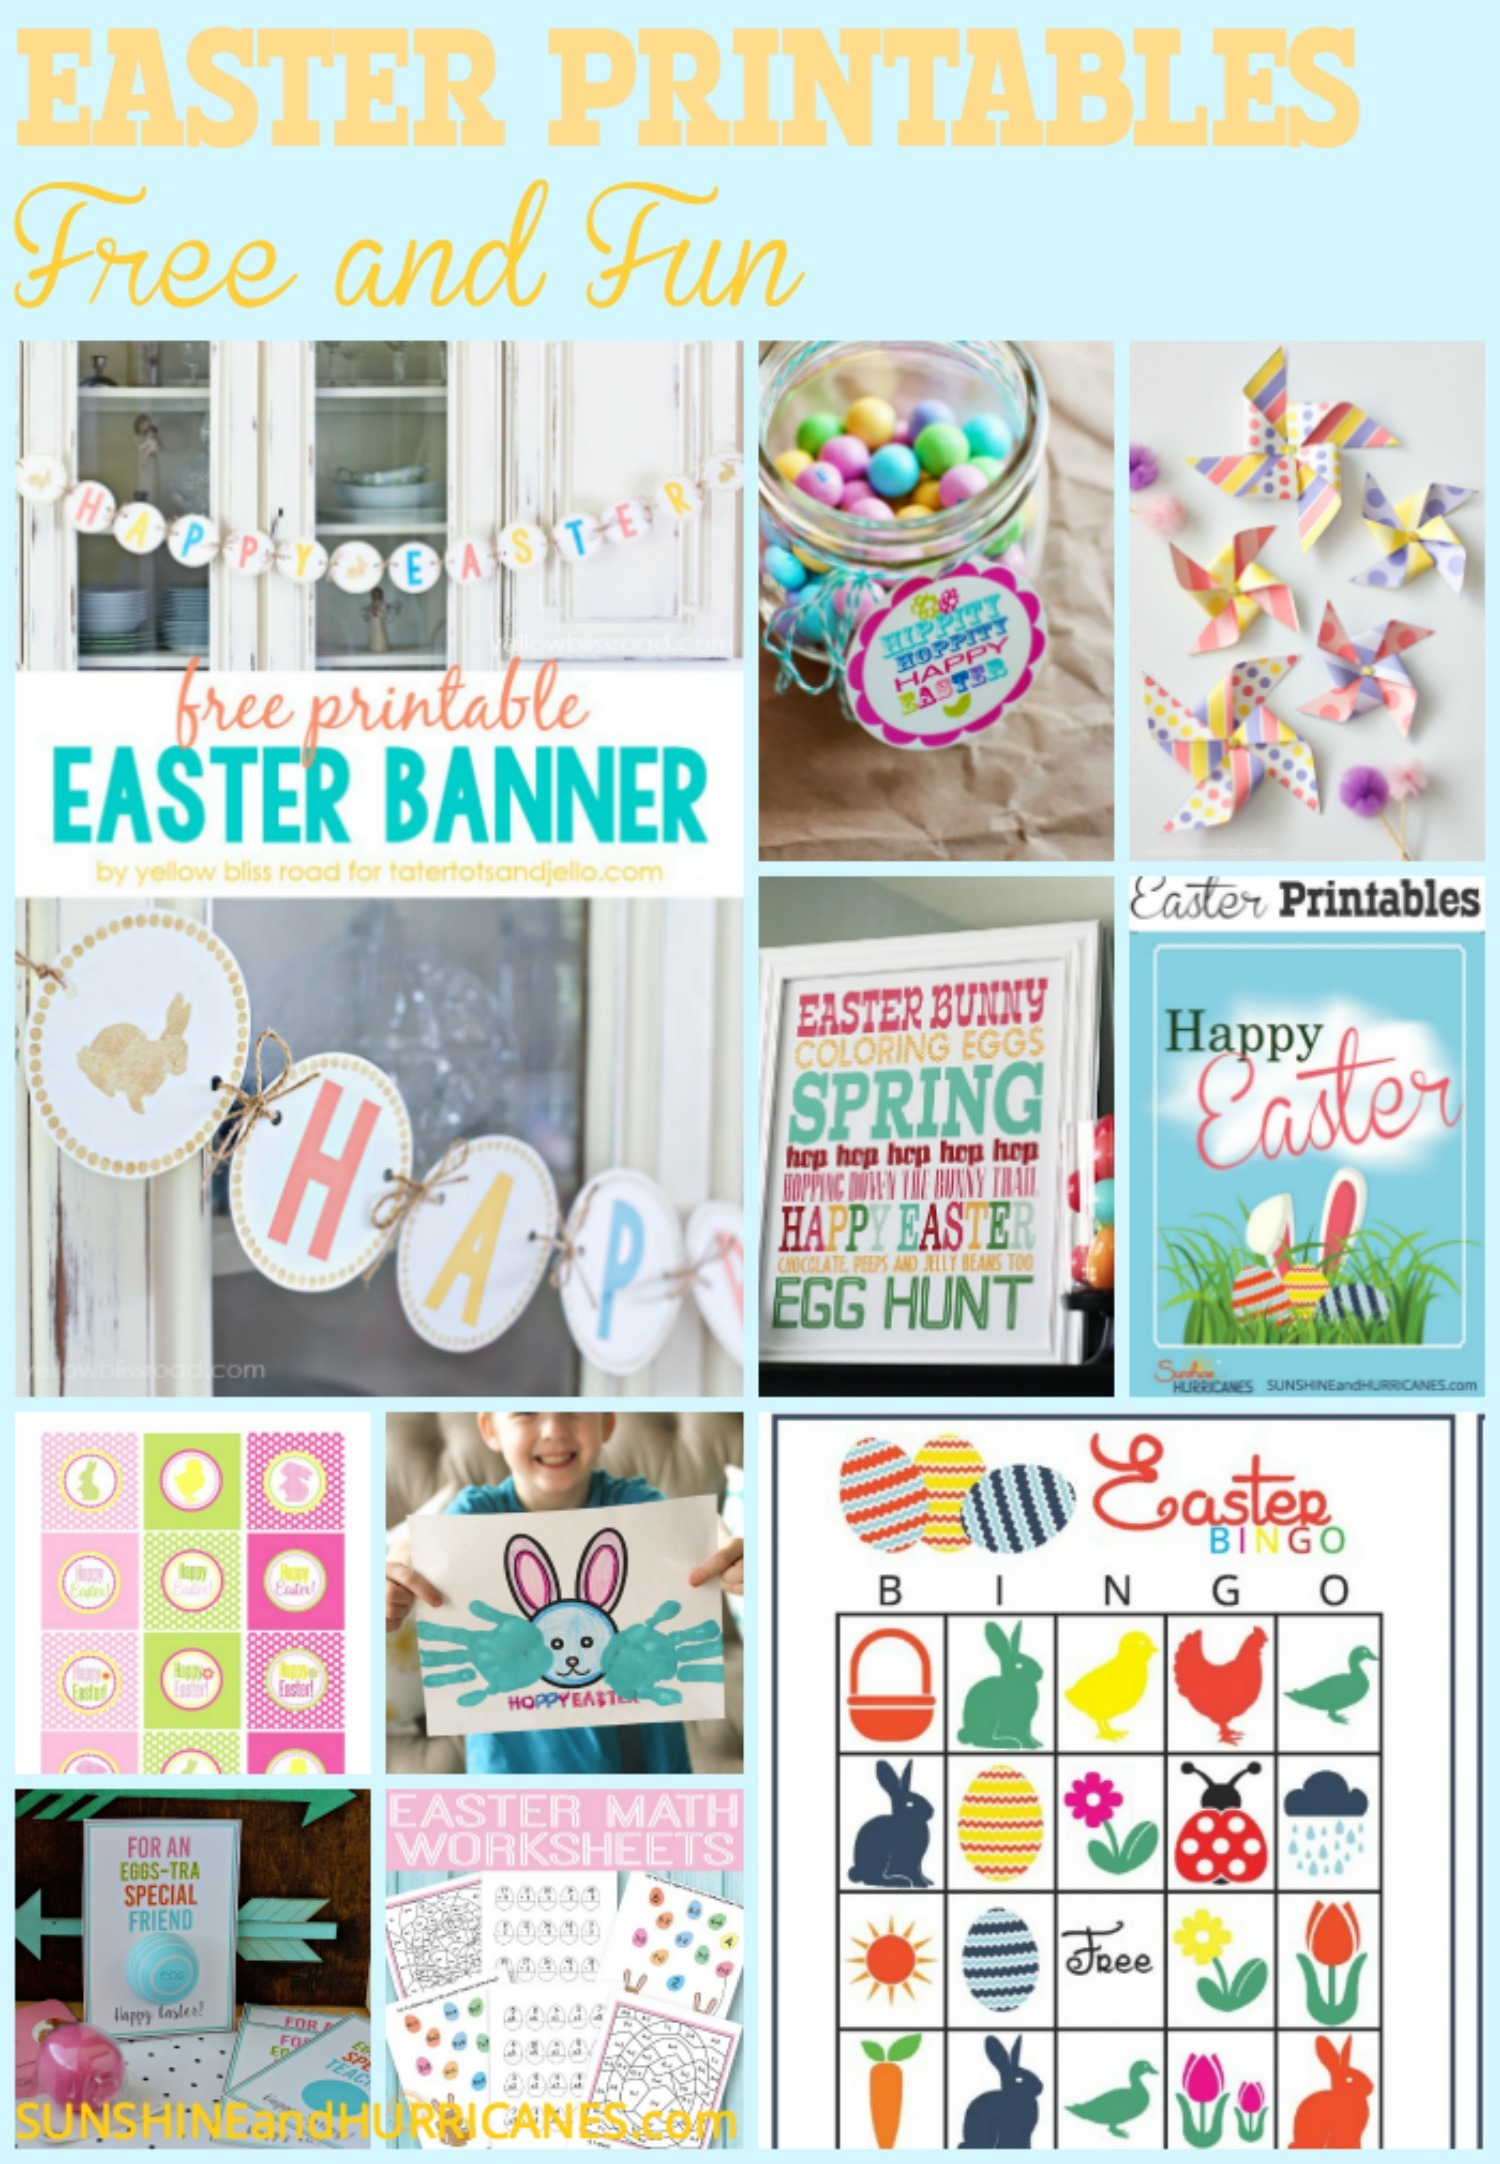 A round up of teh BEST Easter Printables from around the web, these fabulous and FREE ideas are perfect for your home or the classroom! From games and activities to home decor, you'll discover the easy way to add pop to your Easter holiday! Dozens of ideas, all FREE!